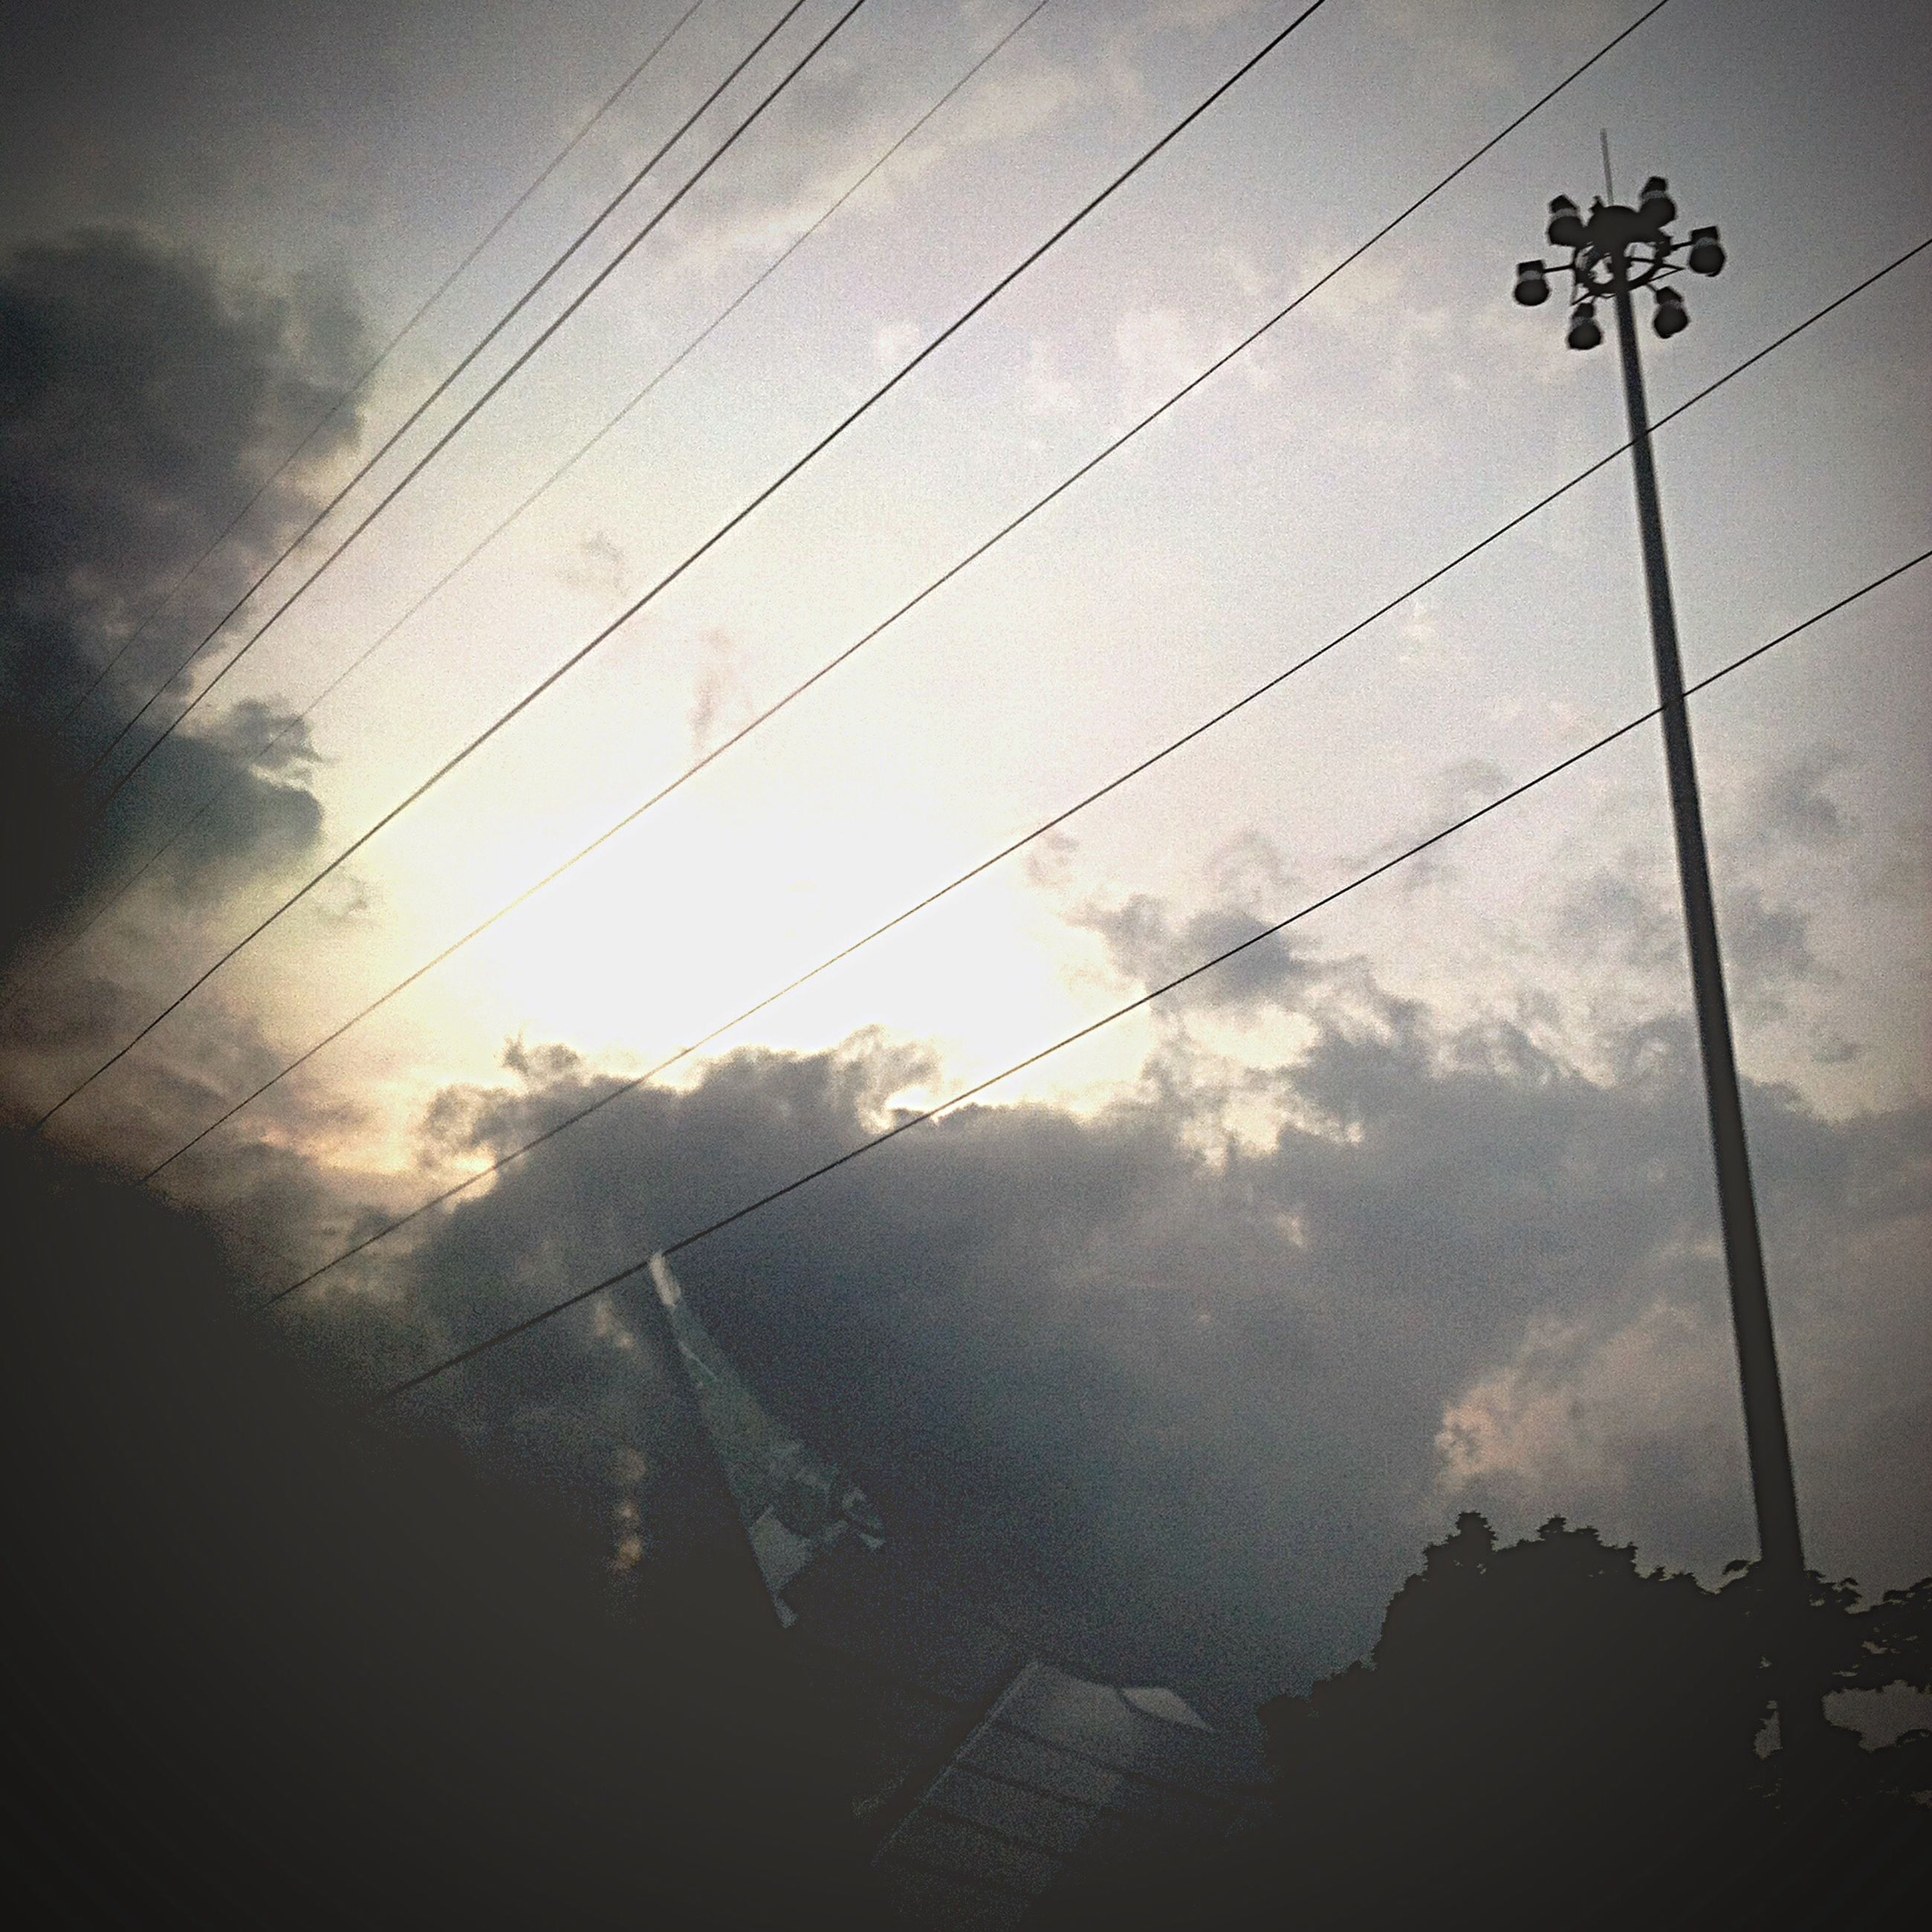 power line, silhouette, low angle view, sky, cable, electricity pylon, electricity, power supply, connection, cloud - sky, fuel and power generation, sunset, dusk, built structure, technology, power cable, pole, no people, outdoors, architecture